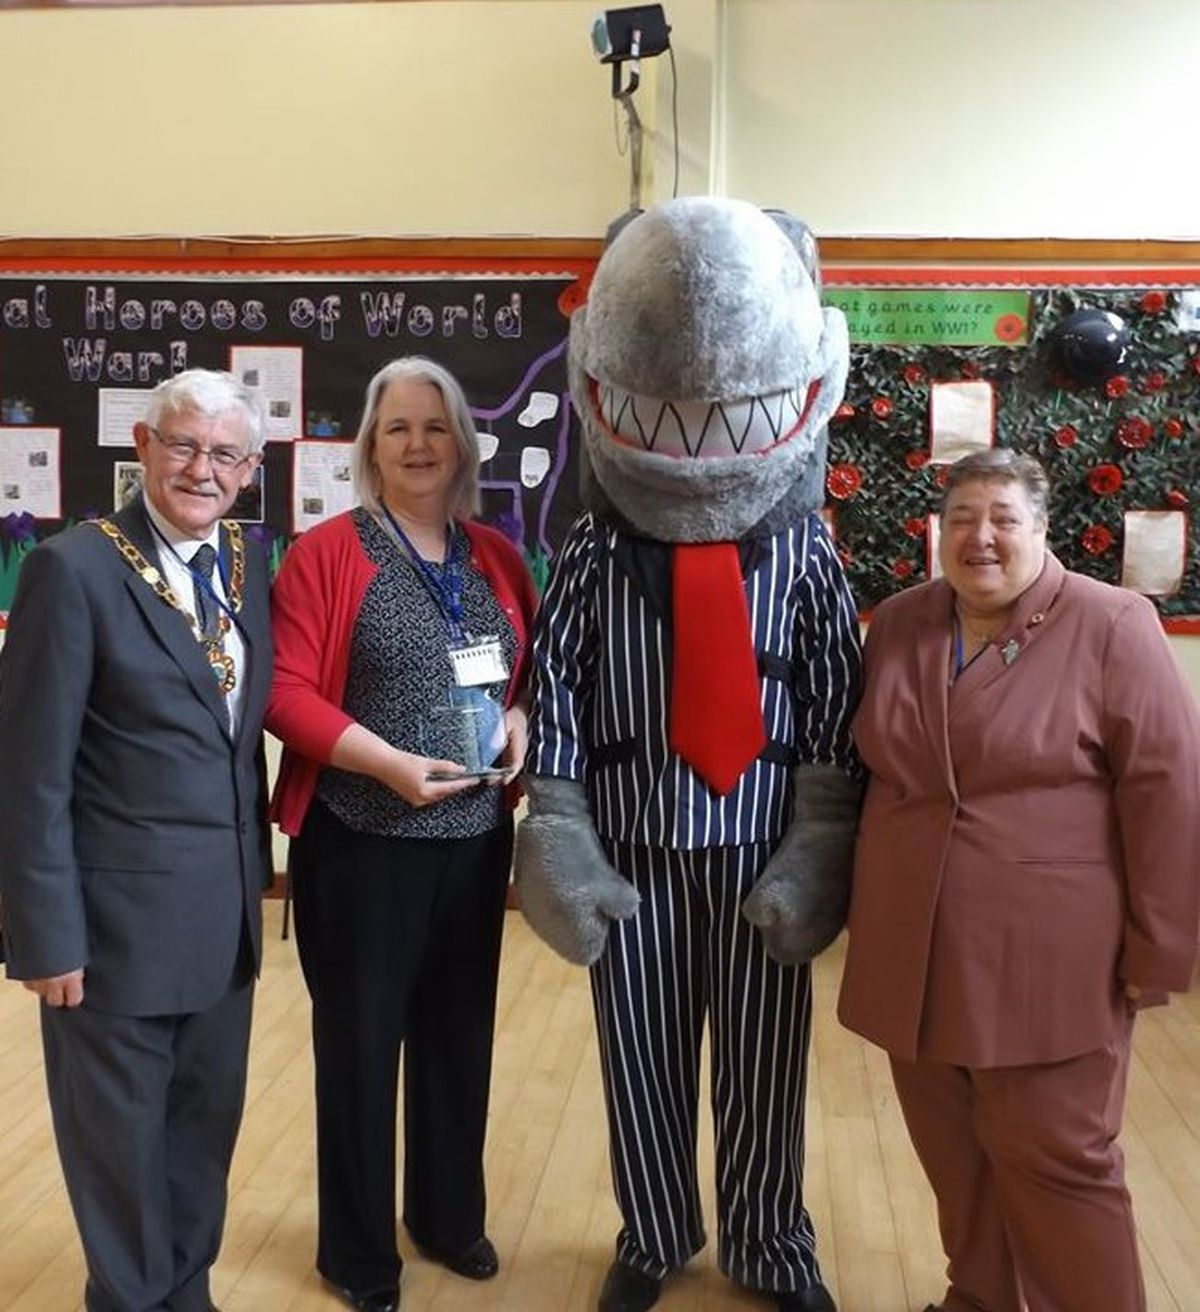 Telford & Wrekin Mayor Councillor Stephen Reynolds with Karen Farrow, Just Credit Union chief officer, and Councillor Jackie Loveridge